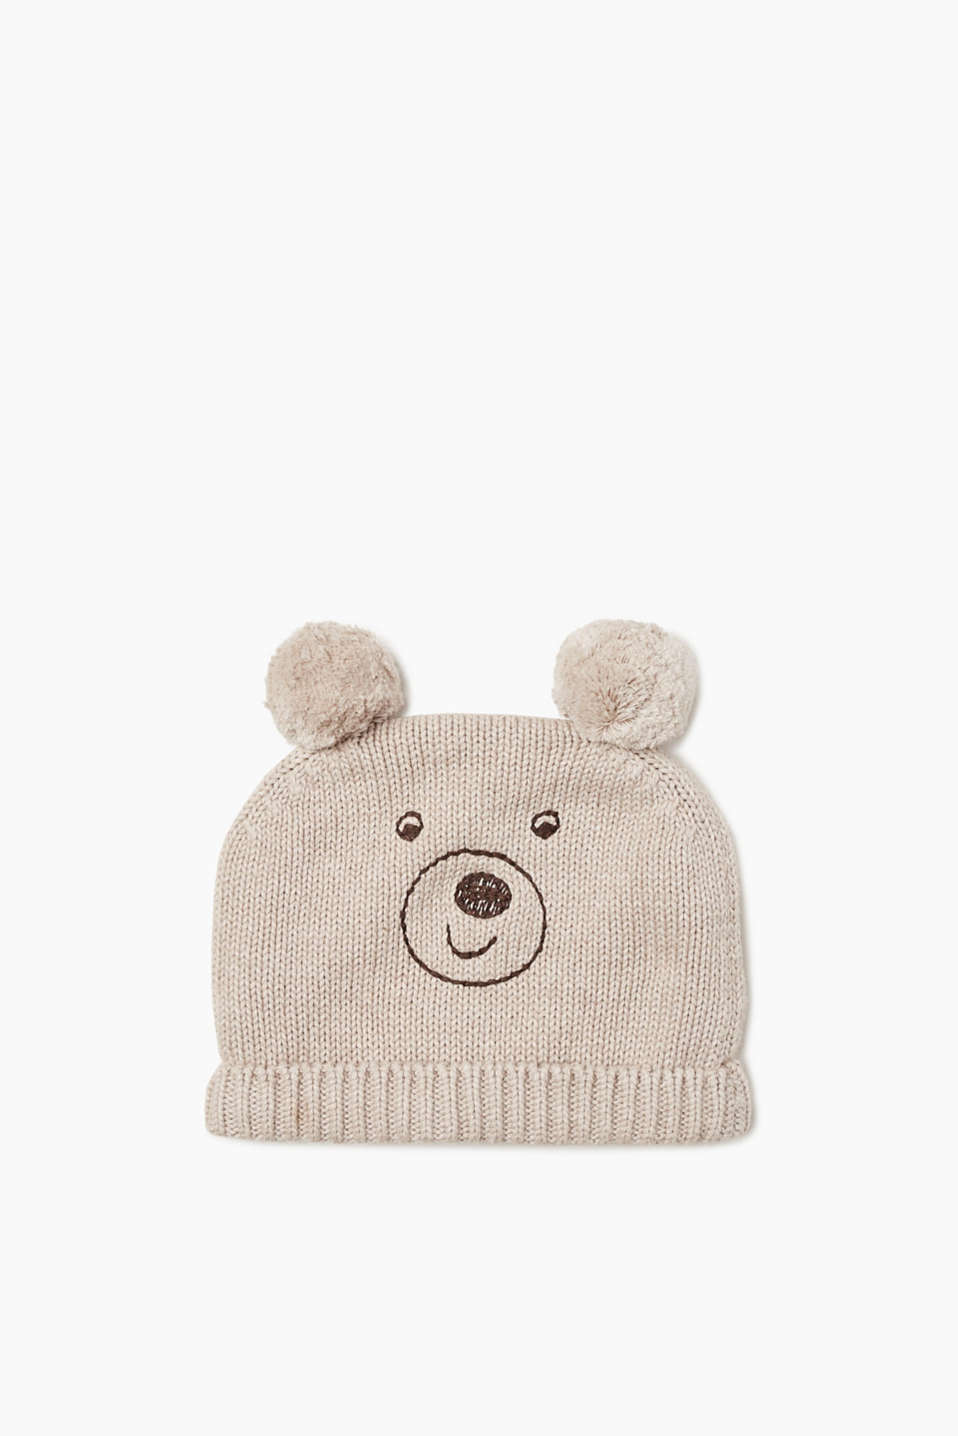 Very cute! Knitted cotton hat with an embroidered bear face, pompom ears and fleece lining.